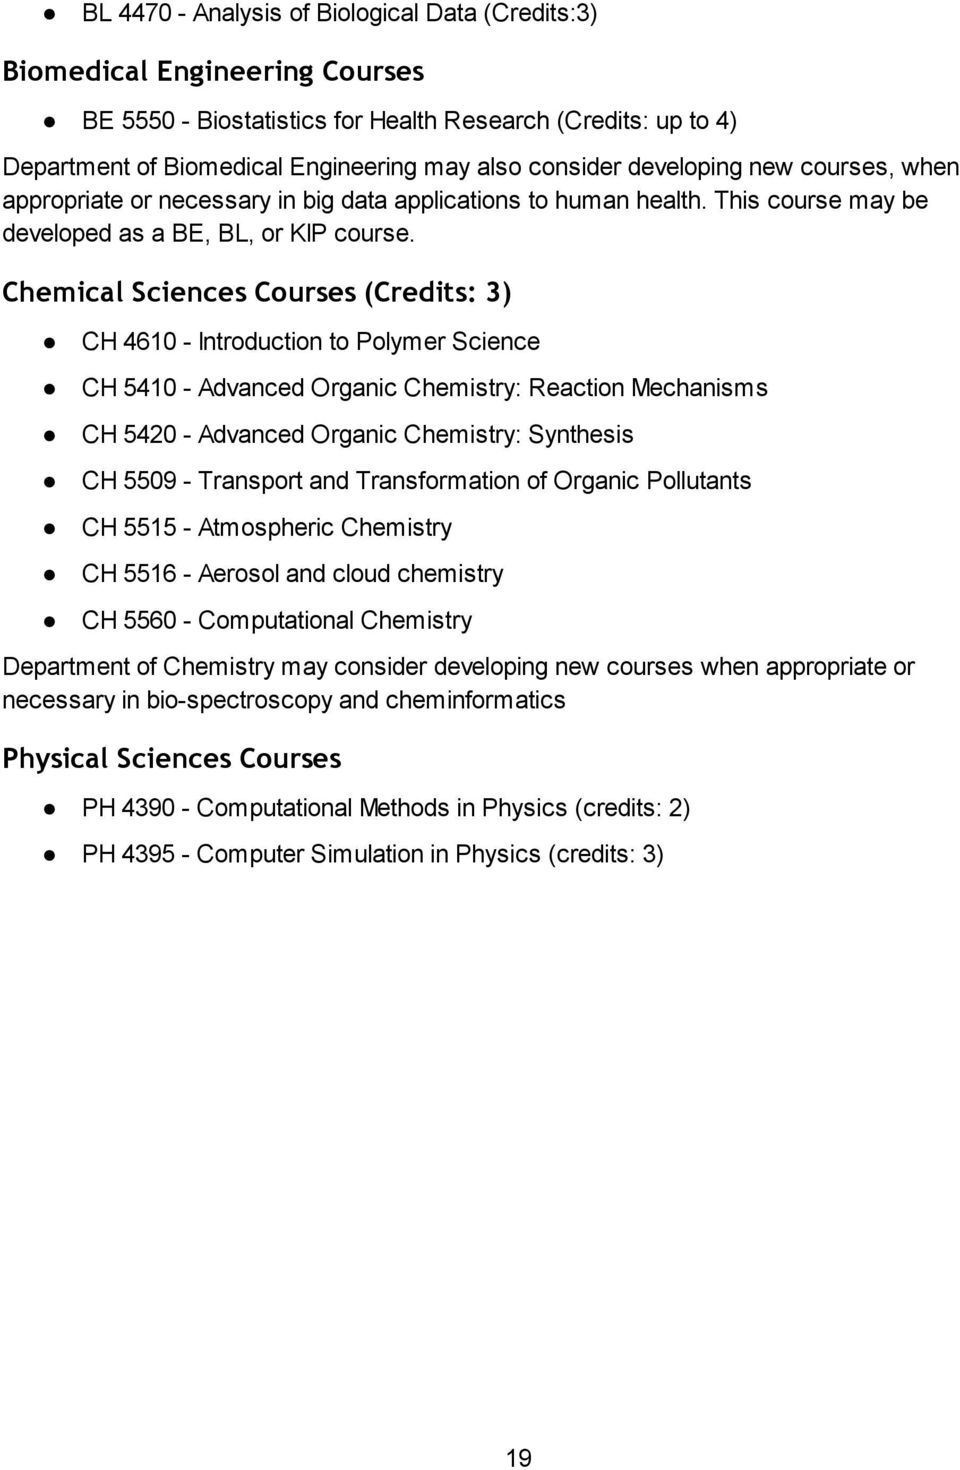 Chemical Sciences Courses (Credits: 3) CH 4610 - Introduction to Polymer Science CH 5410 - Advanced Organic Chemistry: Reaction Mechanisms CH 5420 - Advanced Organic Chemistry: Synthesis CH 5509 -